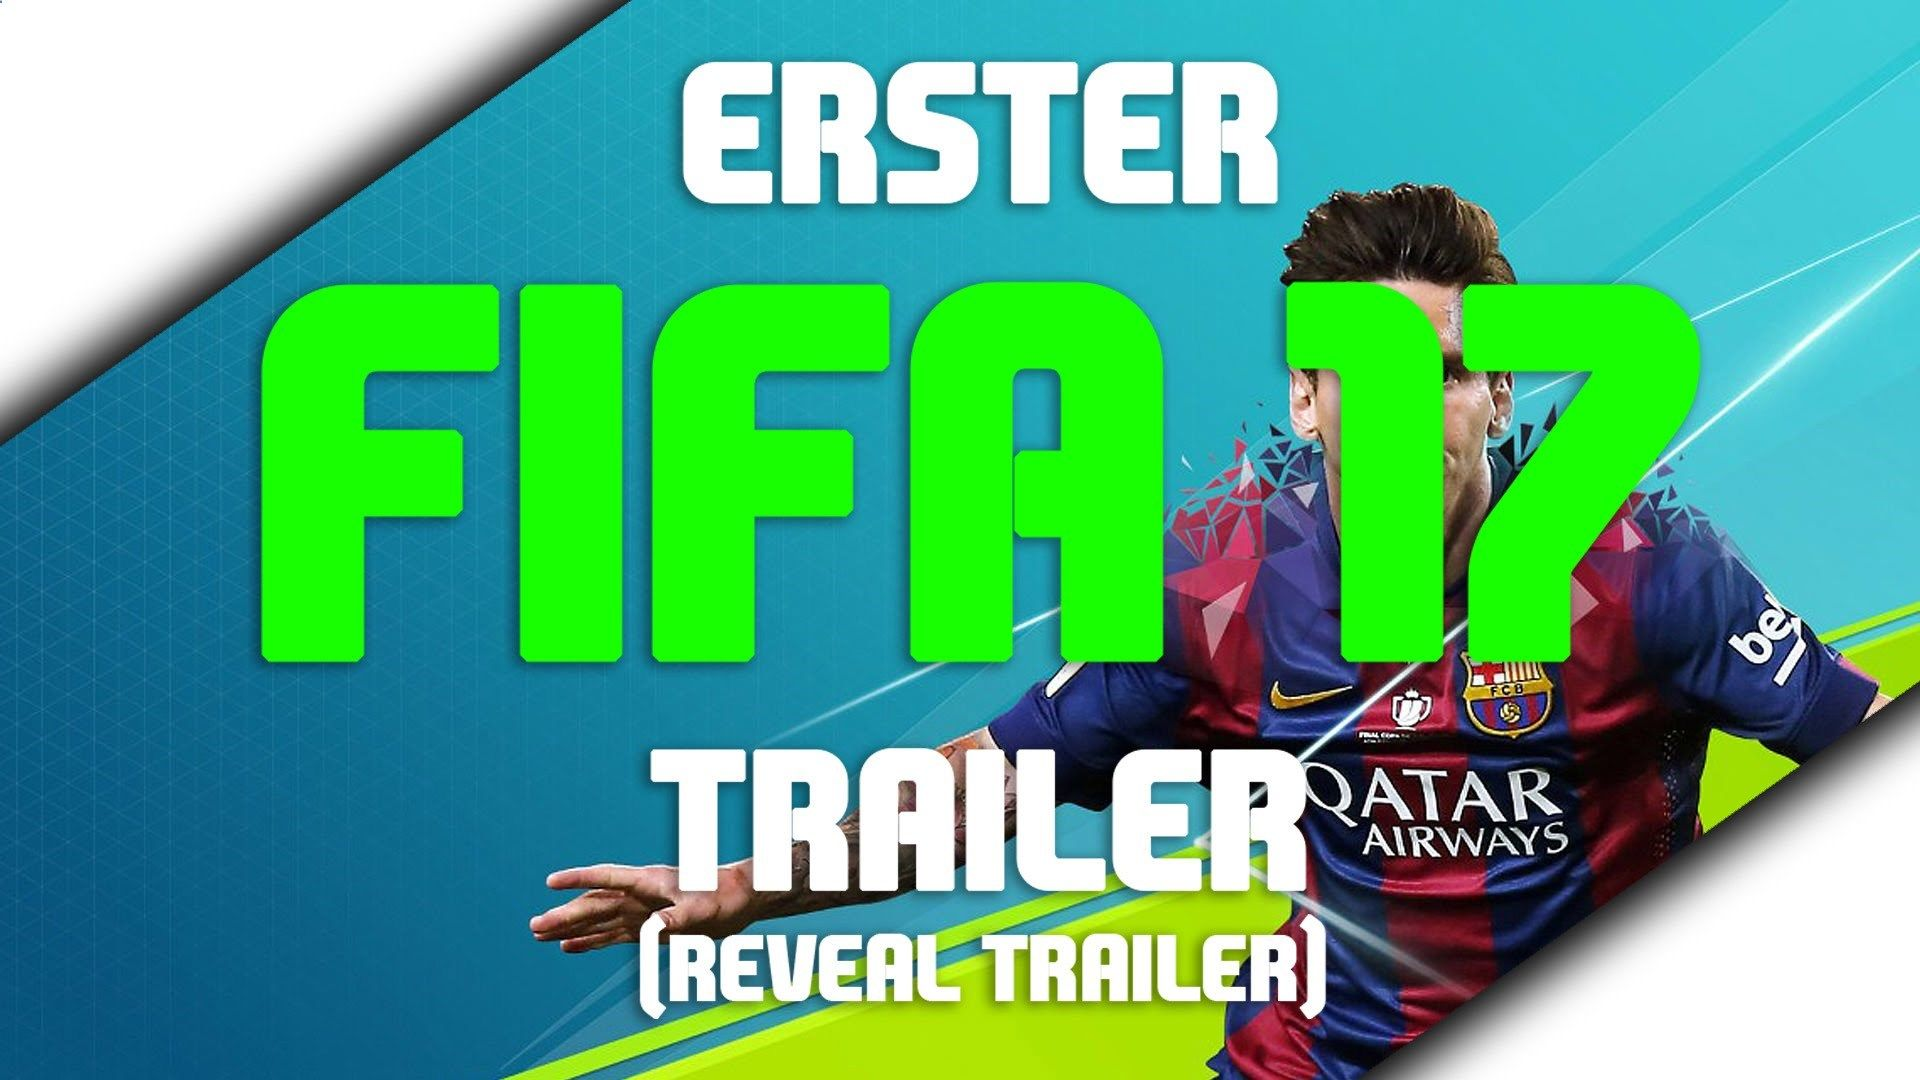 ERSTER FIFA 17 TRAILER - FIRST FIFA 17 Reveal Trailer Football has changed / Frostbite Engine - tickets.fifanz201... #FIFA17